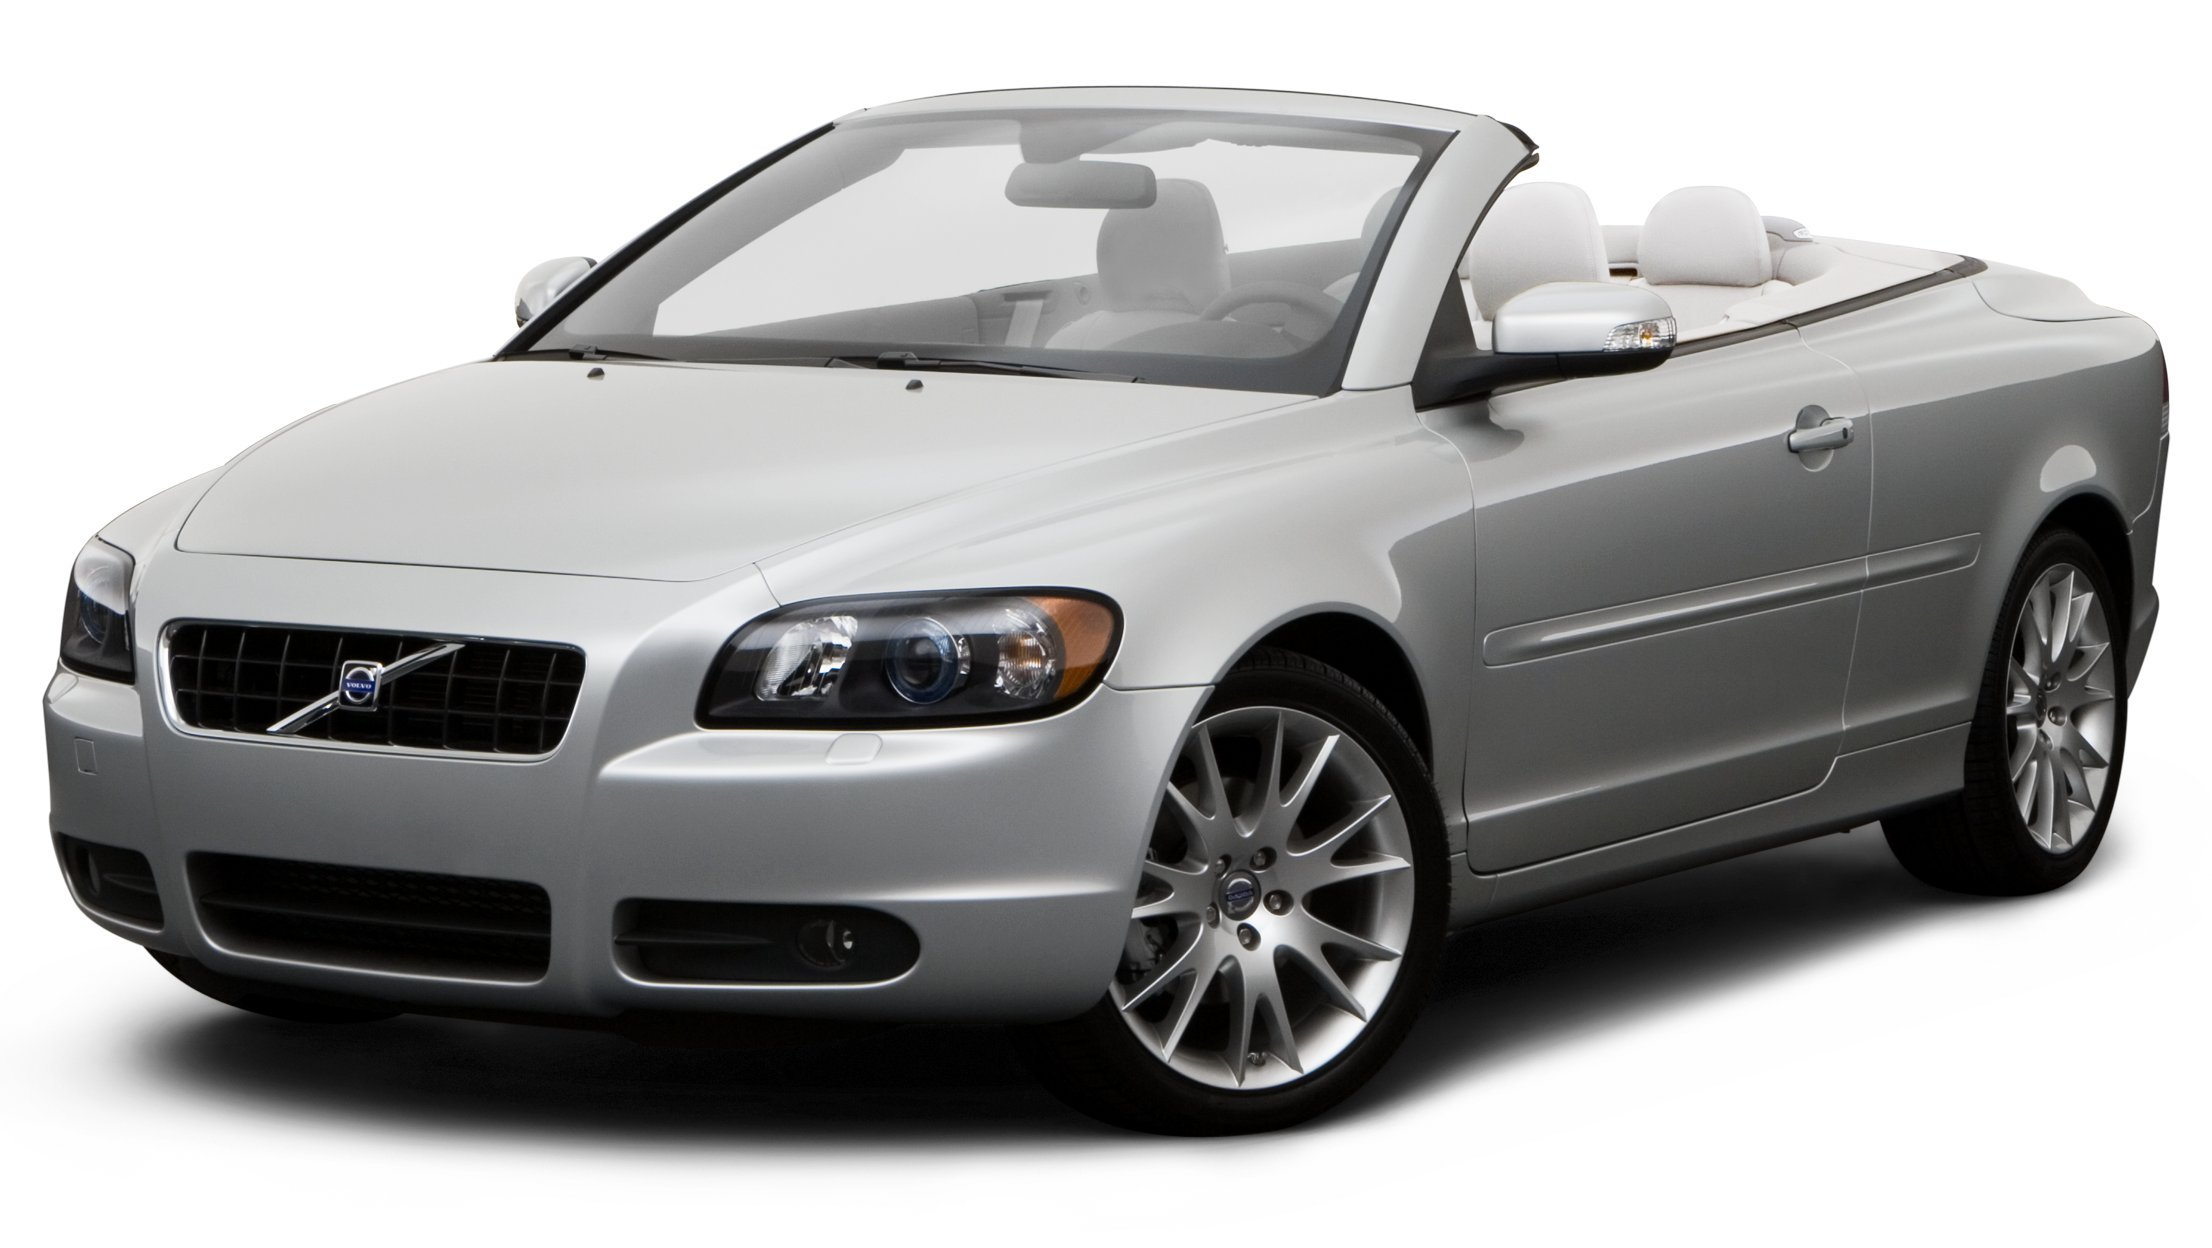 ... 2008 Volvo C70, 2-Door Convertible Automatic Transmission ...